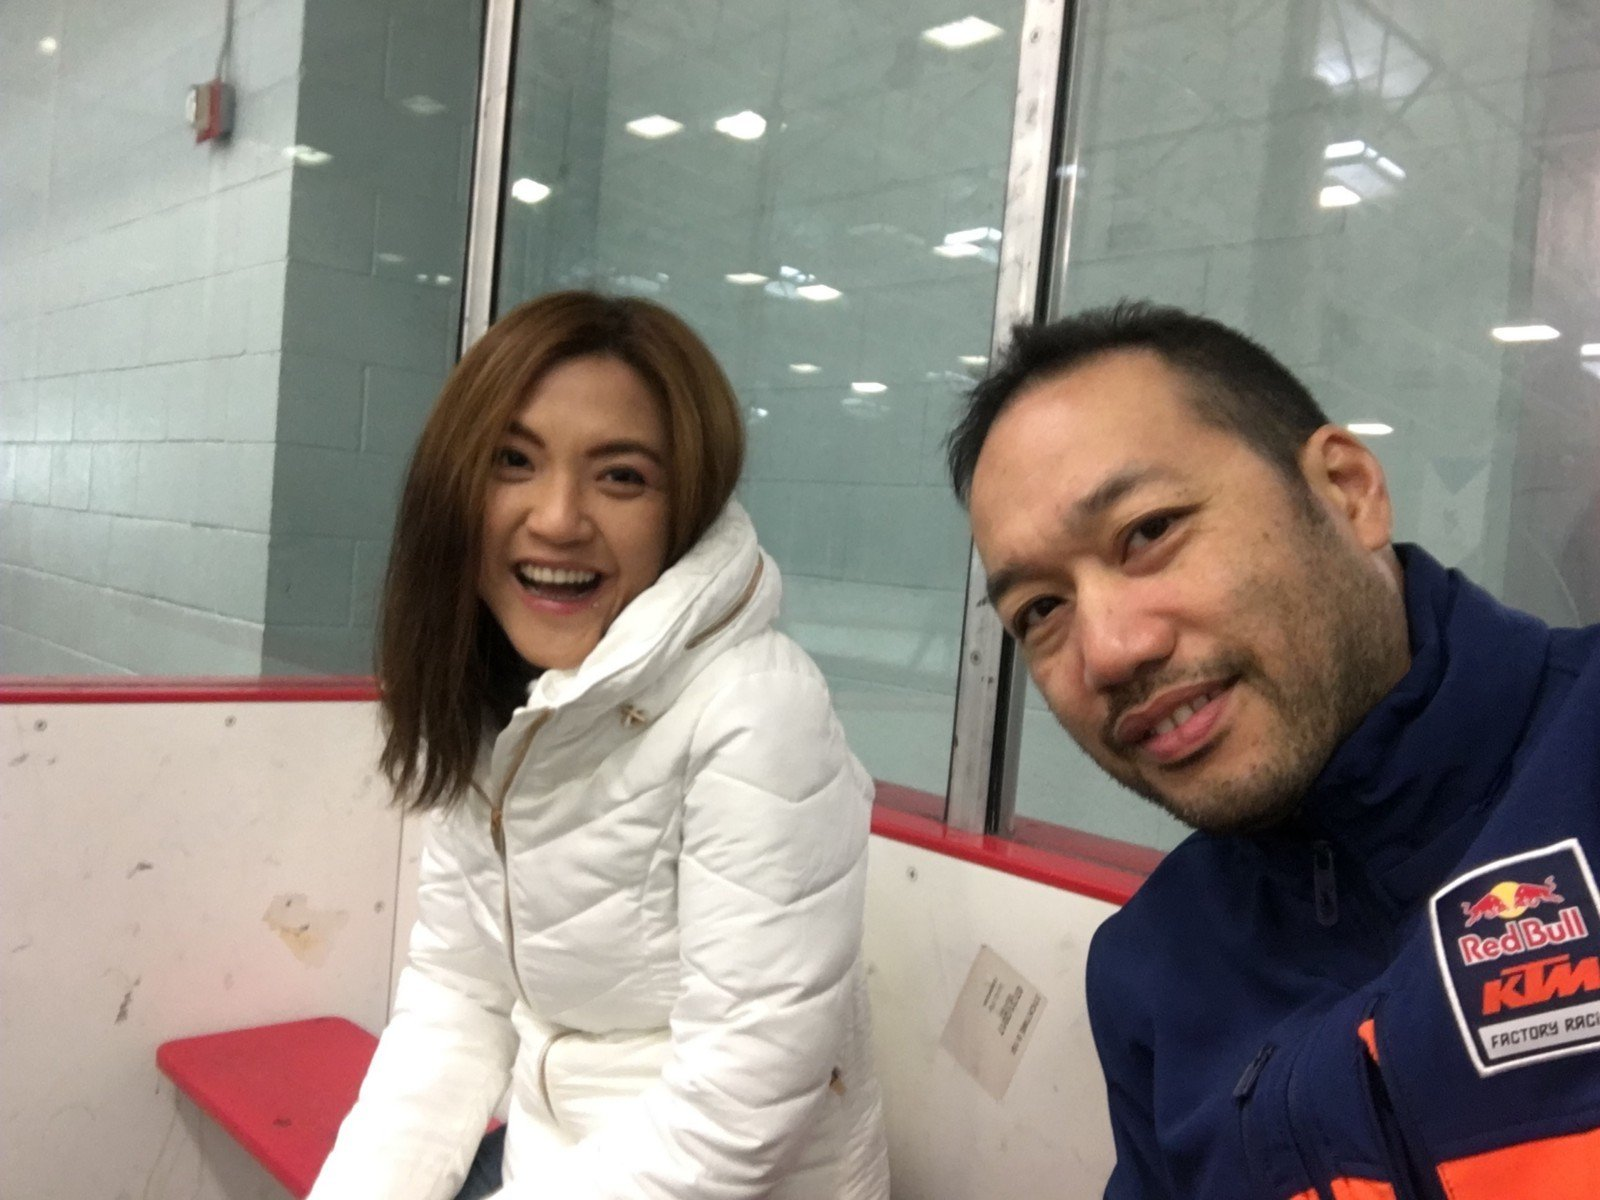 Woman and man at ice skating rink